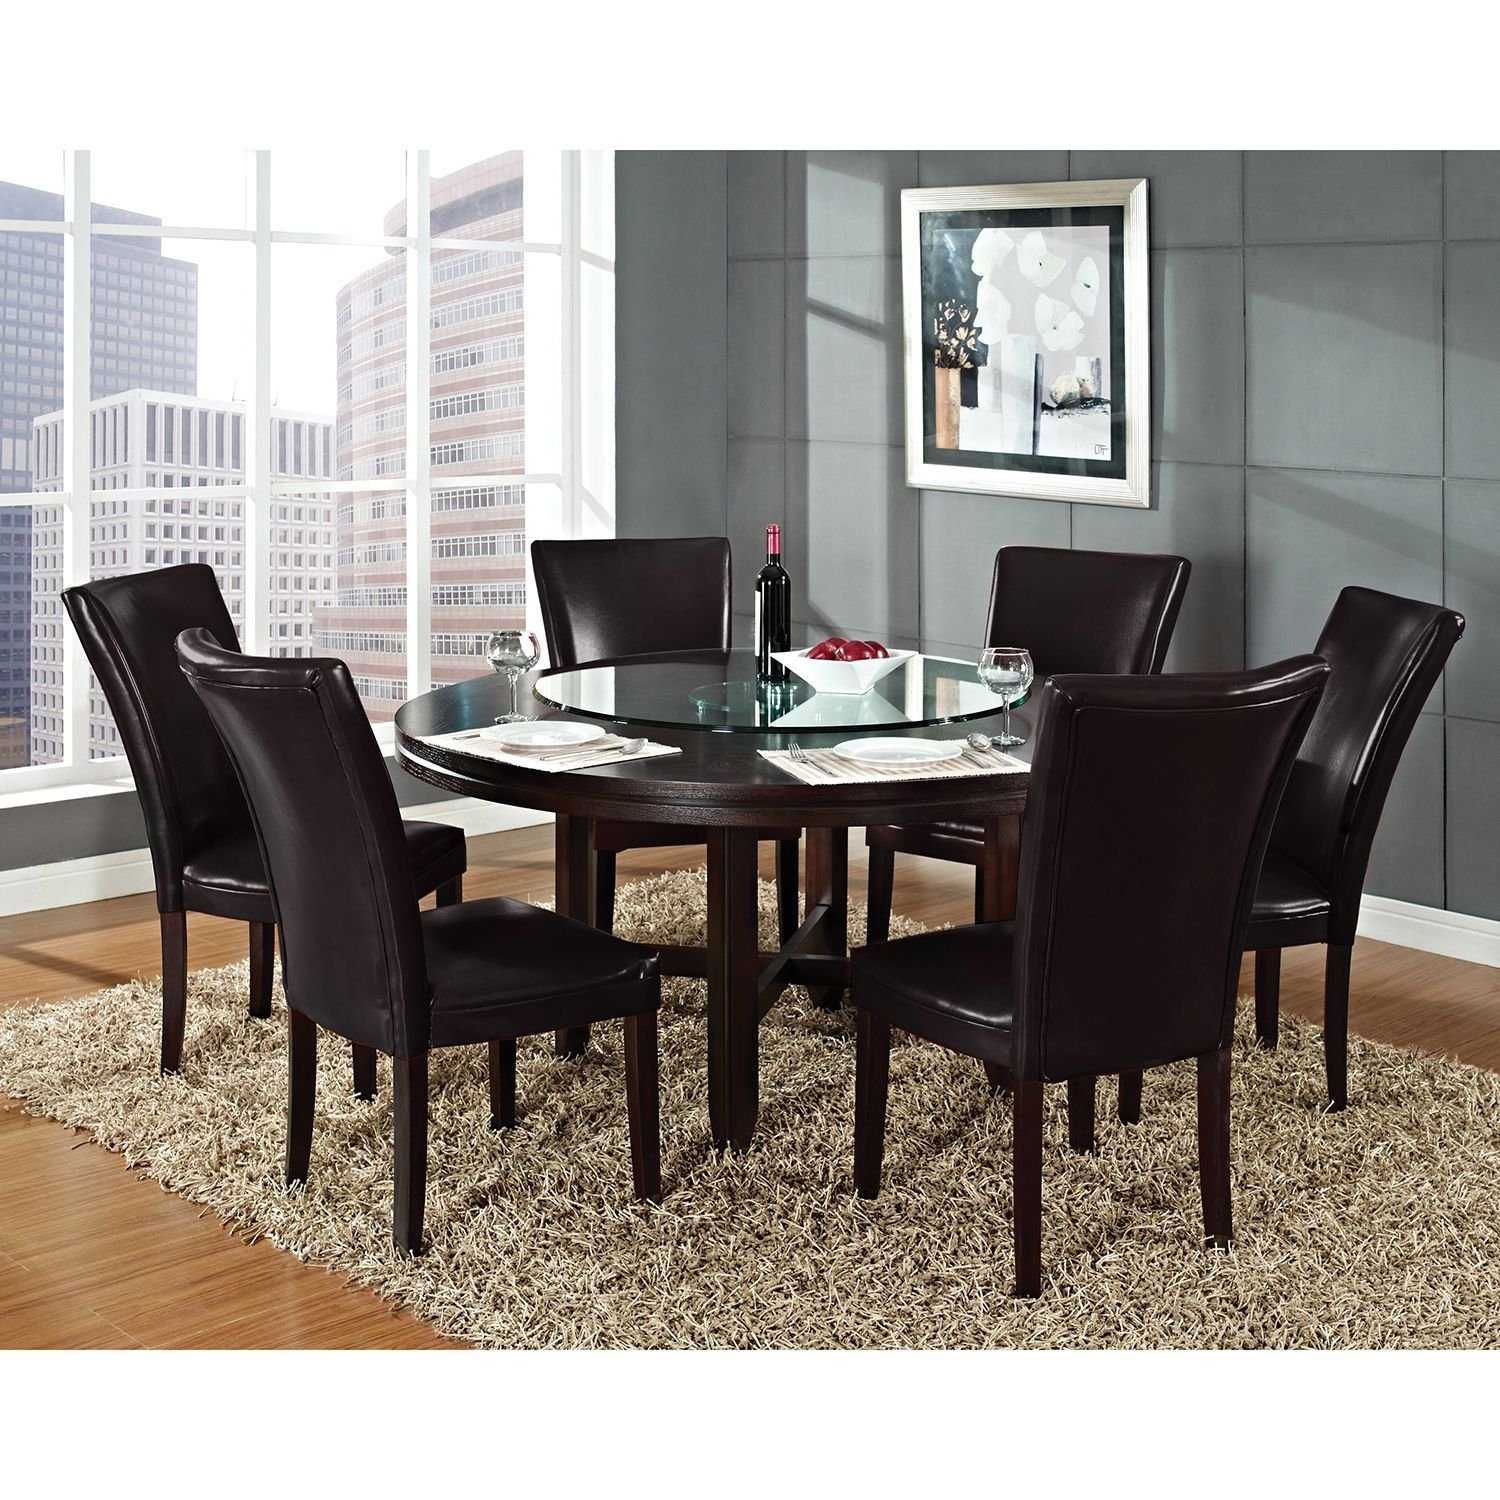 Harding 72 Round Dining Set 7 Pc Dark Brown Leather Chairs